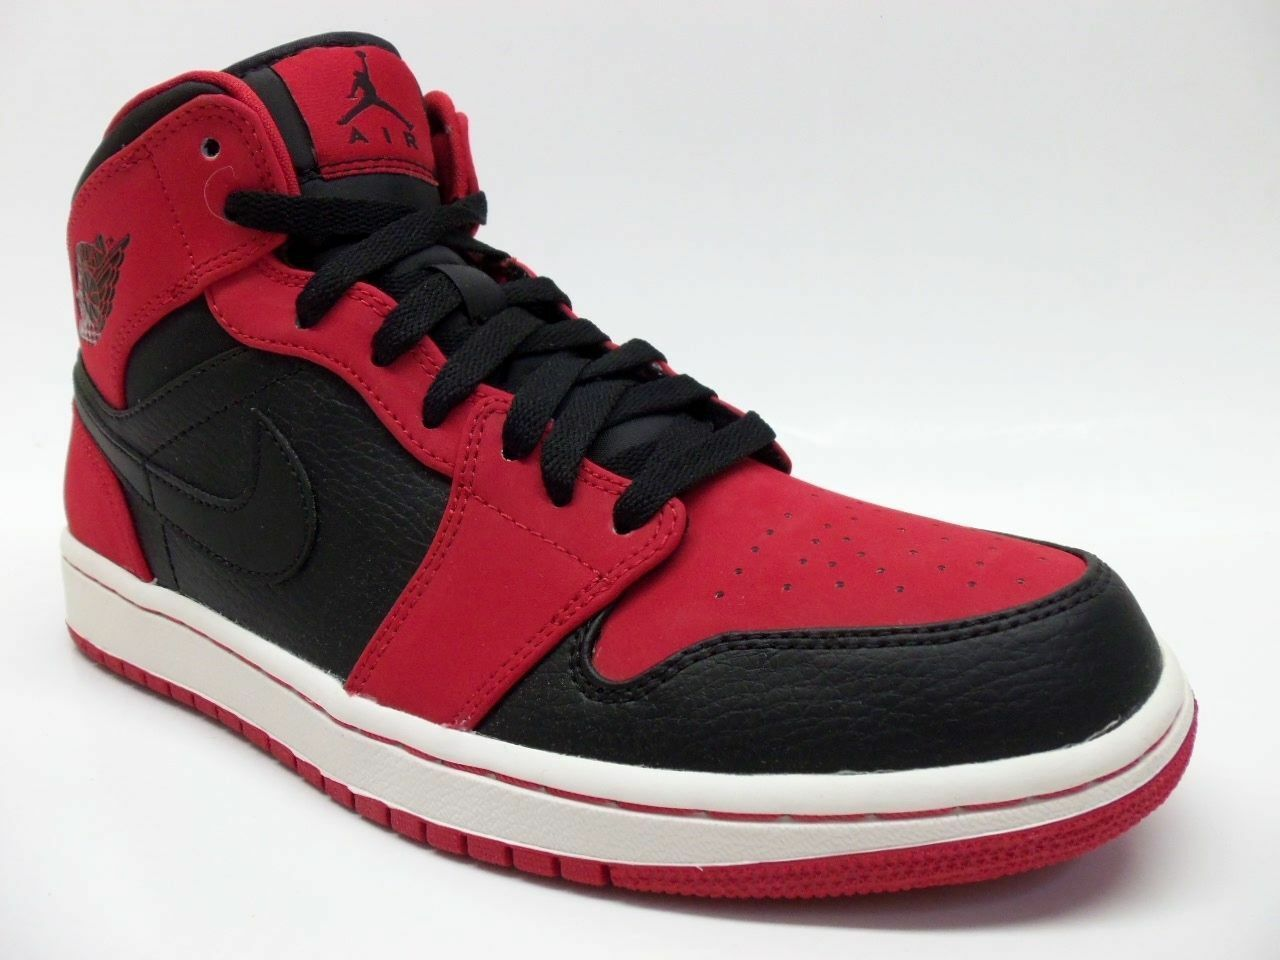 NIKE AIR JORDAN 1 MID  BRED  BLACK BLACK-GYM RED SIZE MEN'S 9 [554724-005]